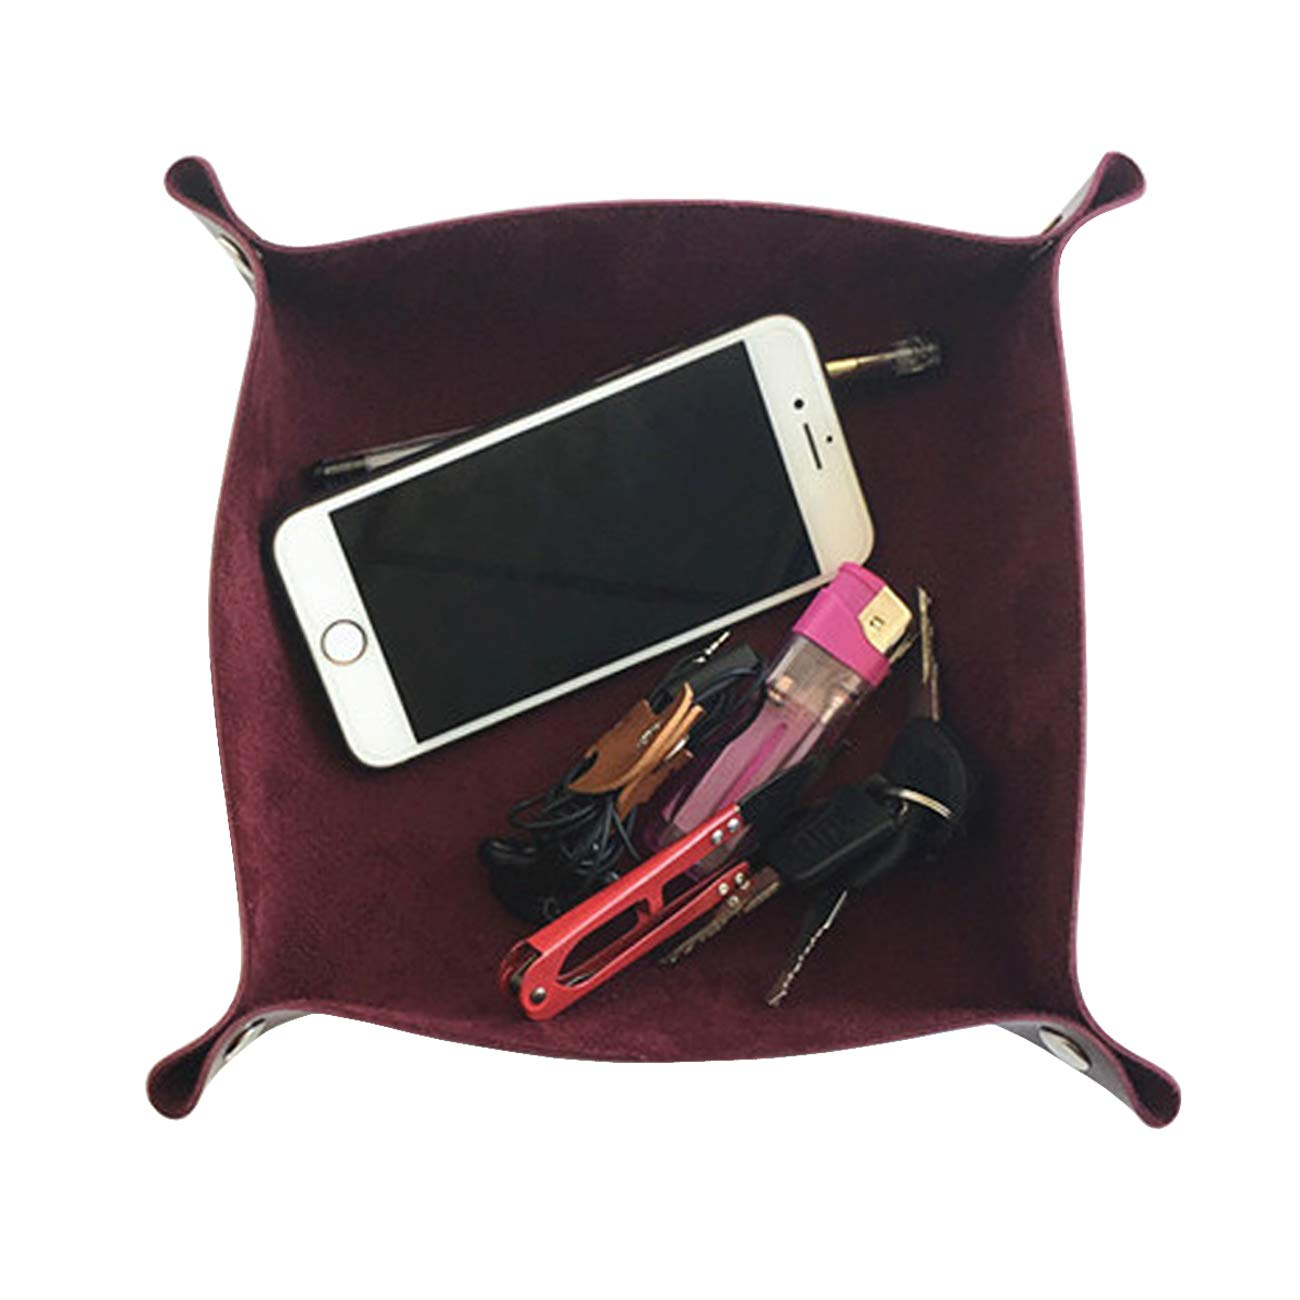 Acronde Leather Valet Tray Jewelry Tray Box Bedside Storage Tray Desk Organizer Trays Personalized Leather Catchall for Coin Key Phone Wallet Watches Glasses Catchall Wine Red